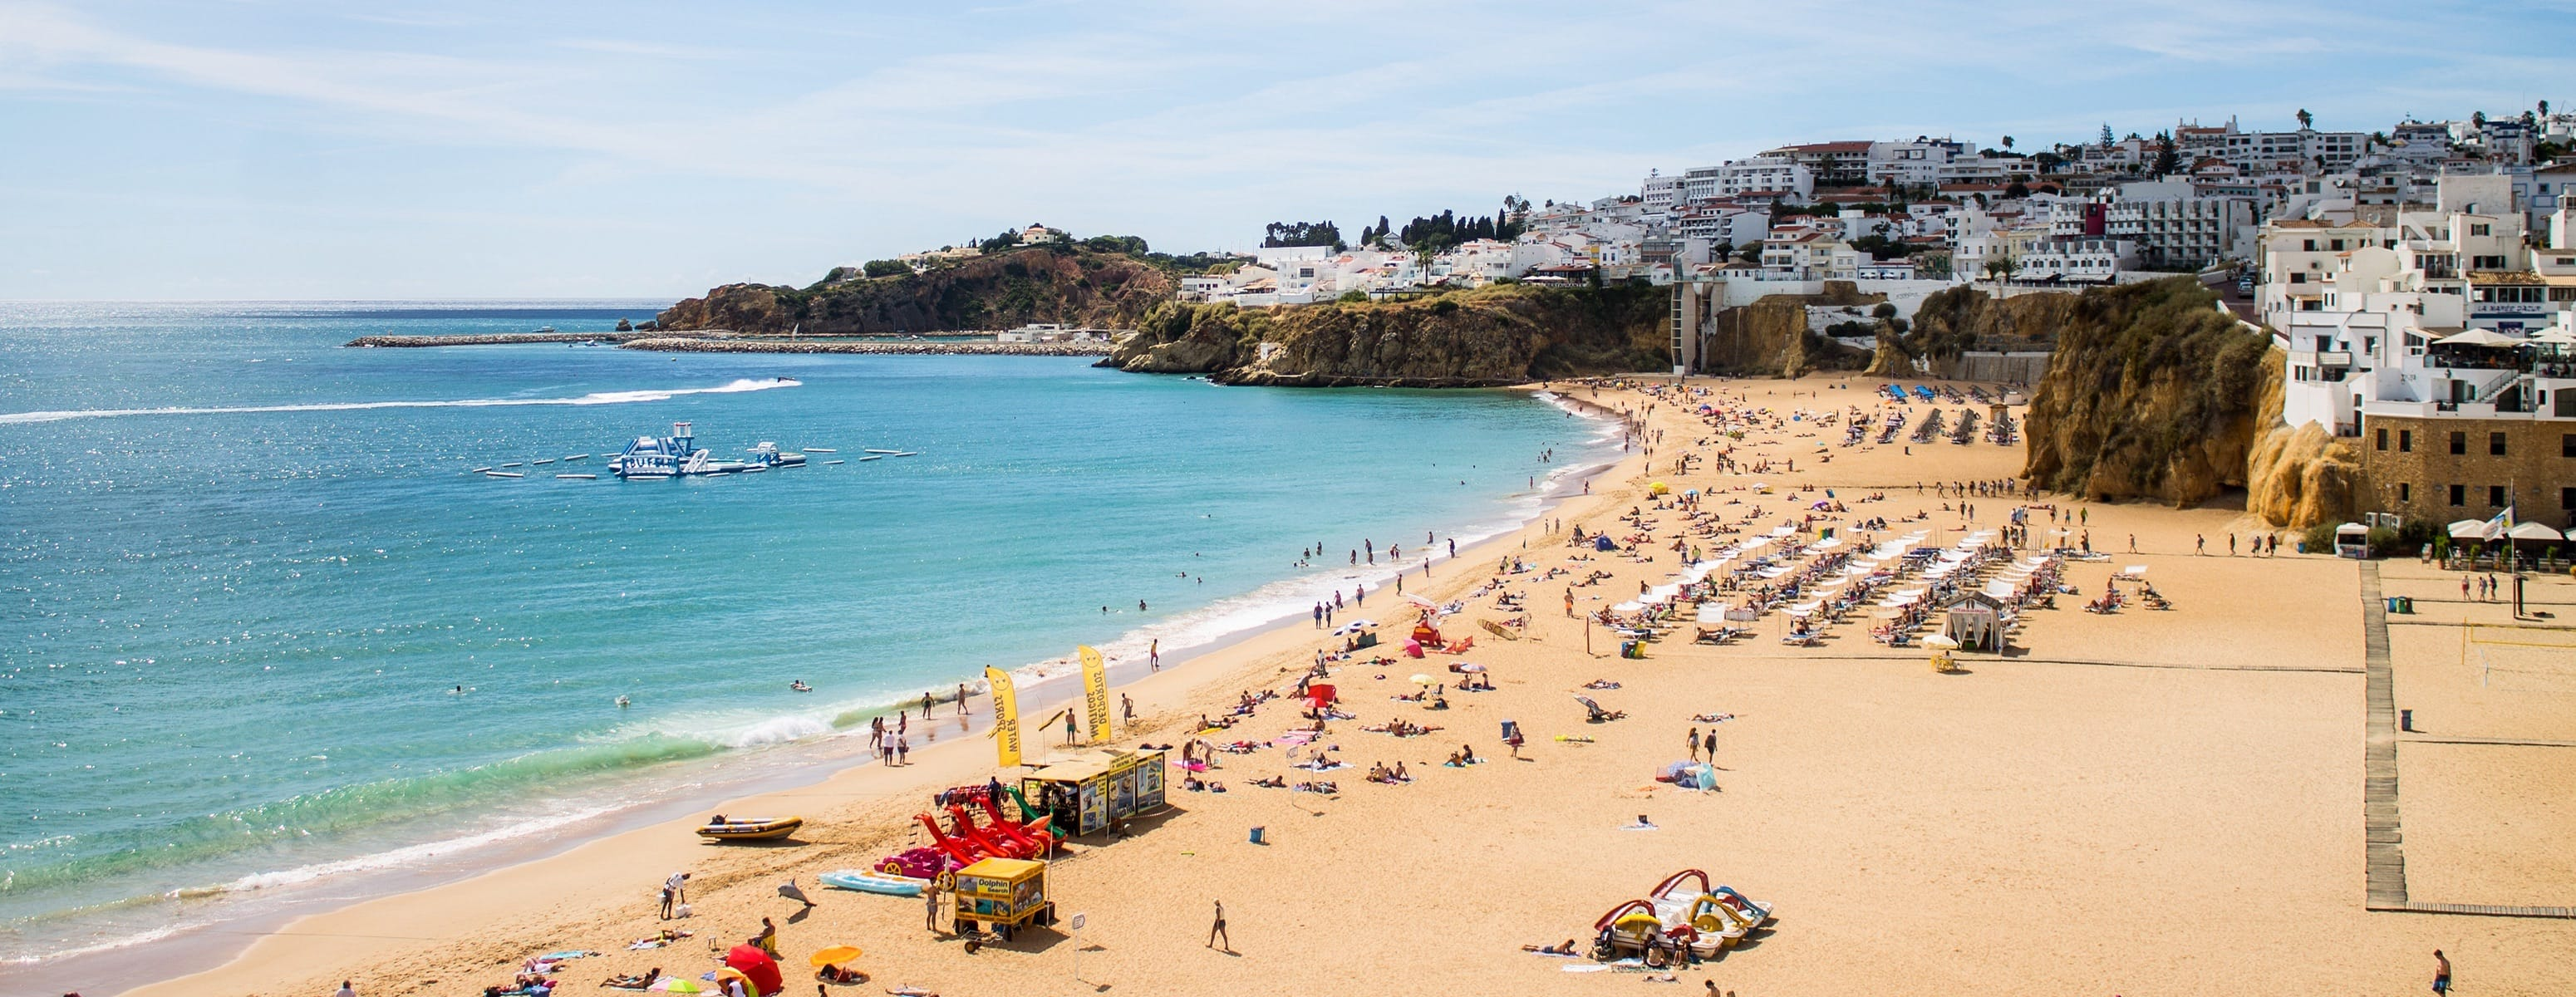 Vacation rentals in Praia da Rocha